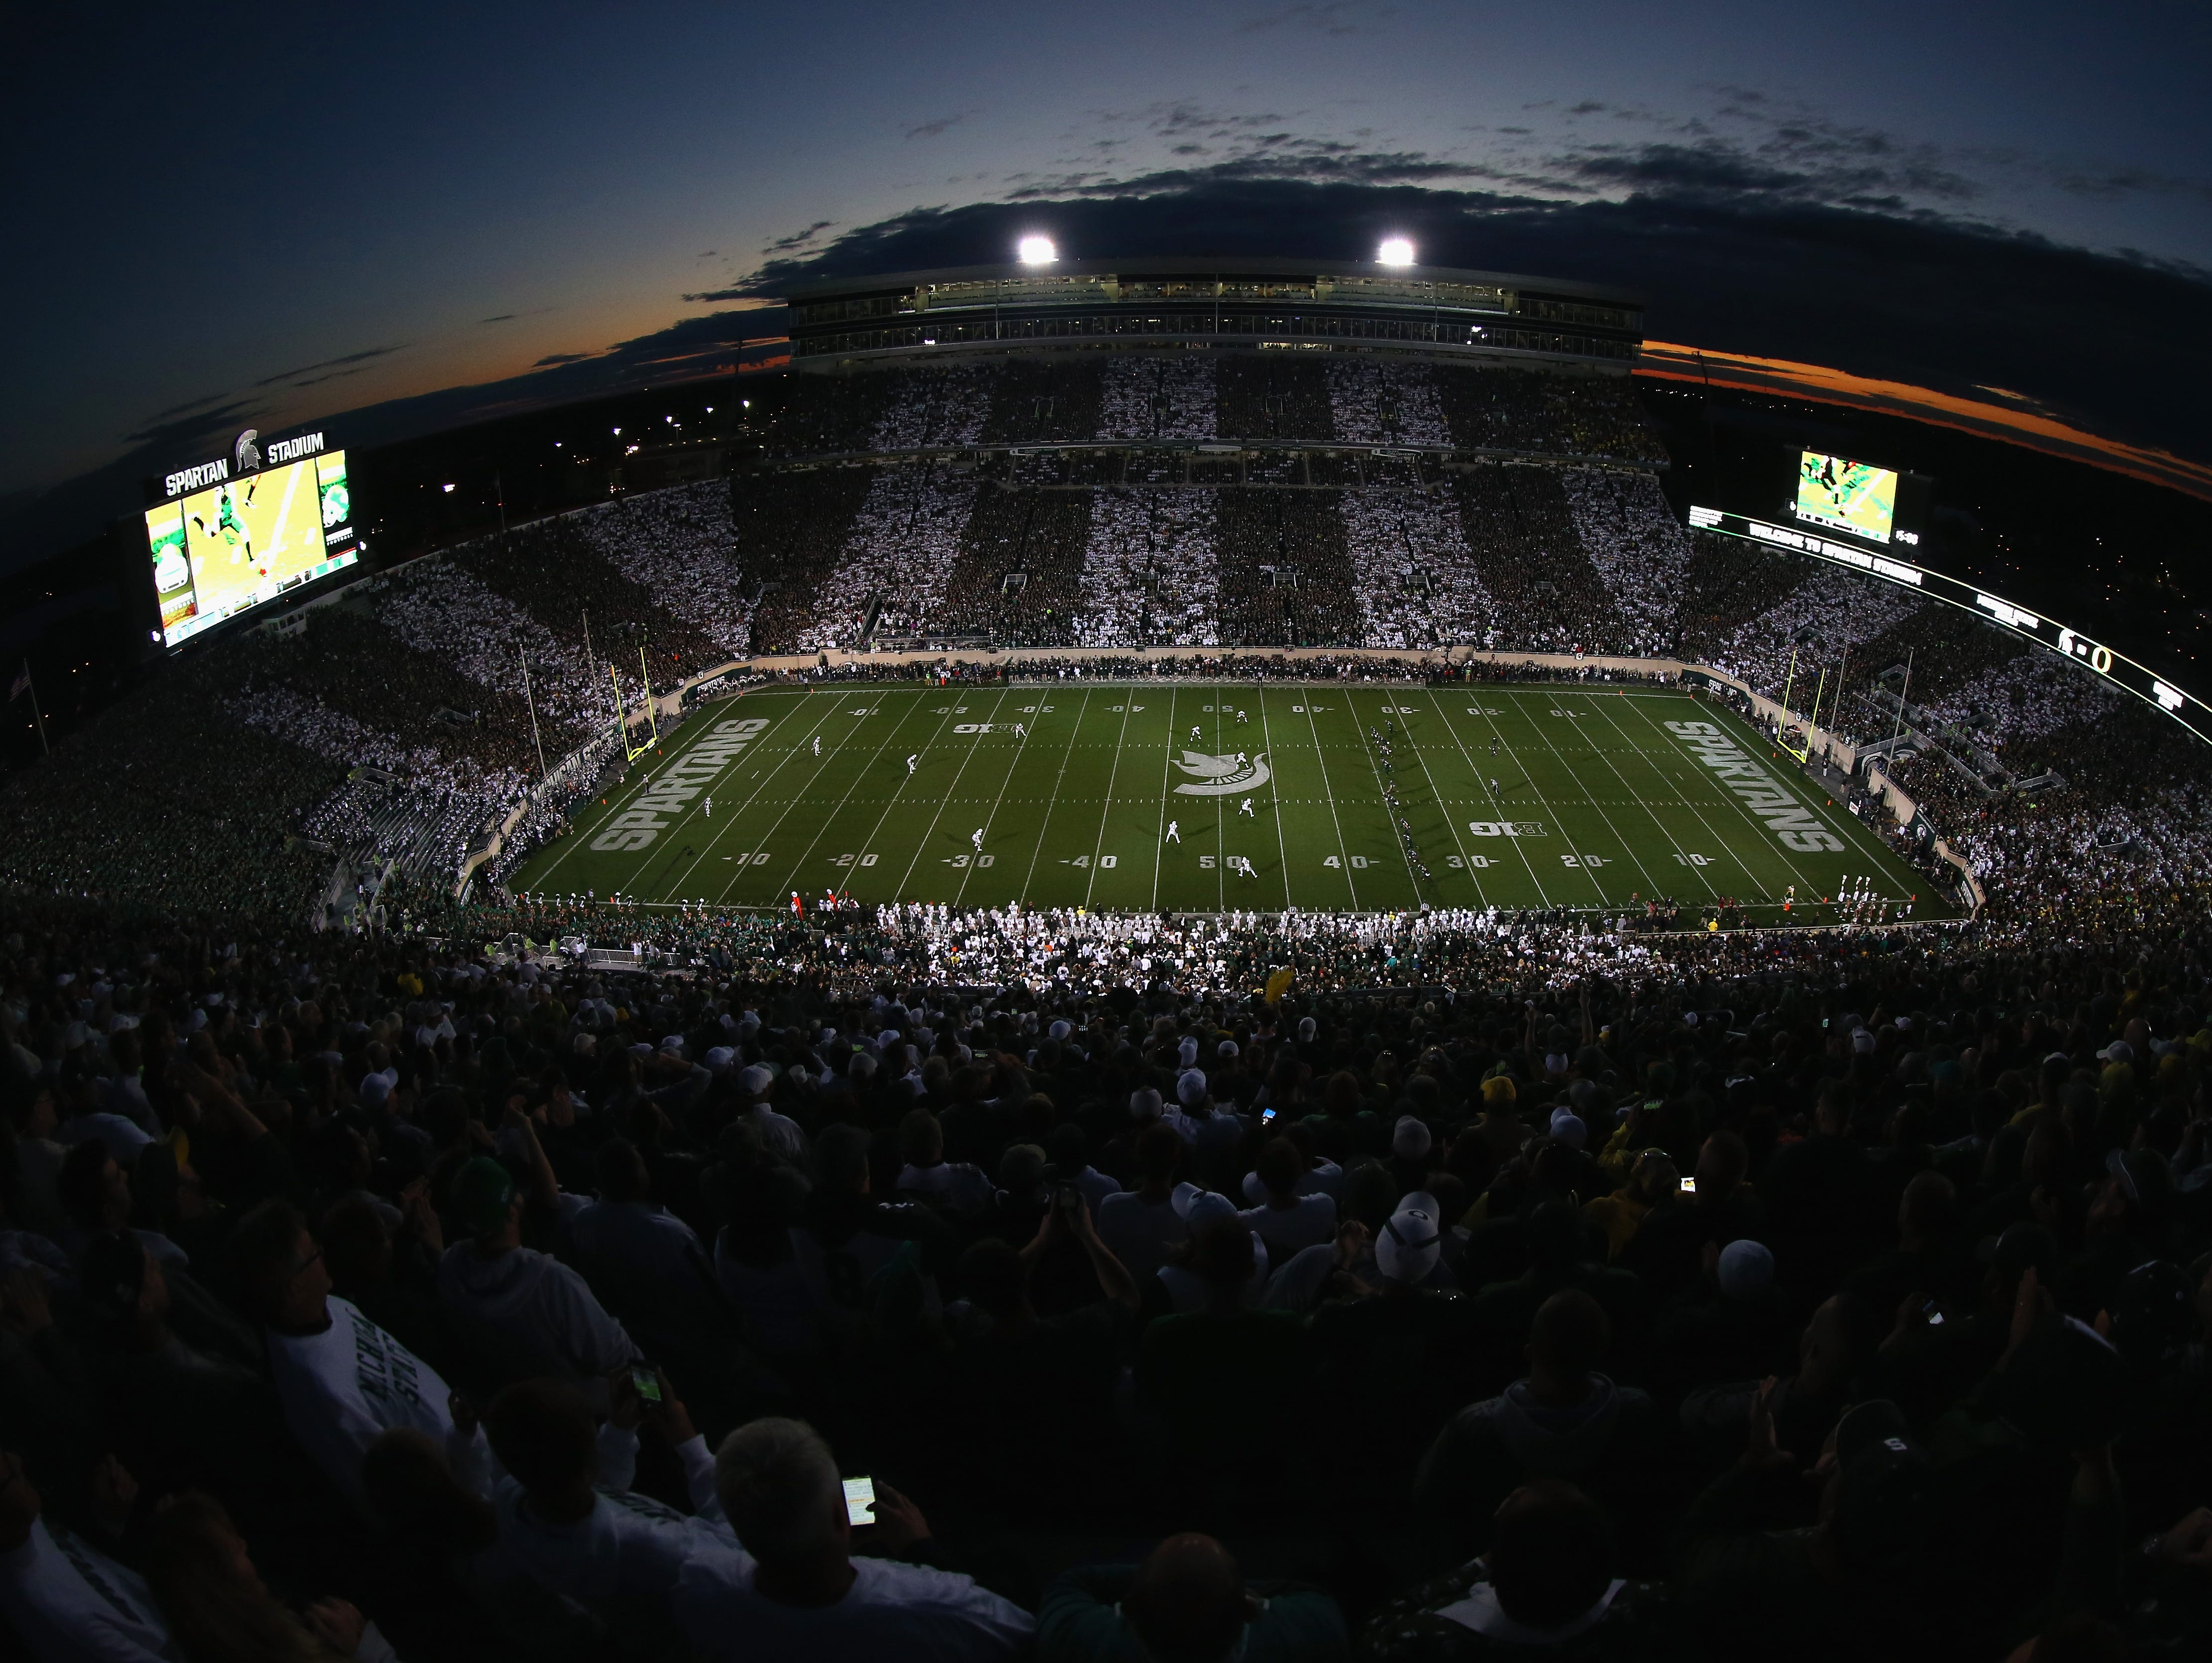 A general view of the kickoff between the Oregon Ducks versus Michigan State Spartans at Spartan Stadium on September 12, 2015 in East Lansing.